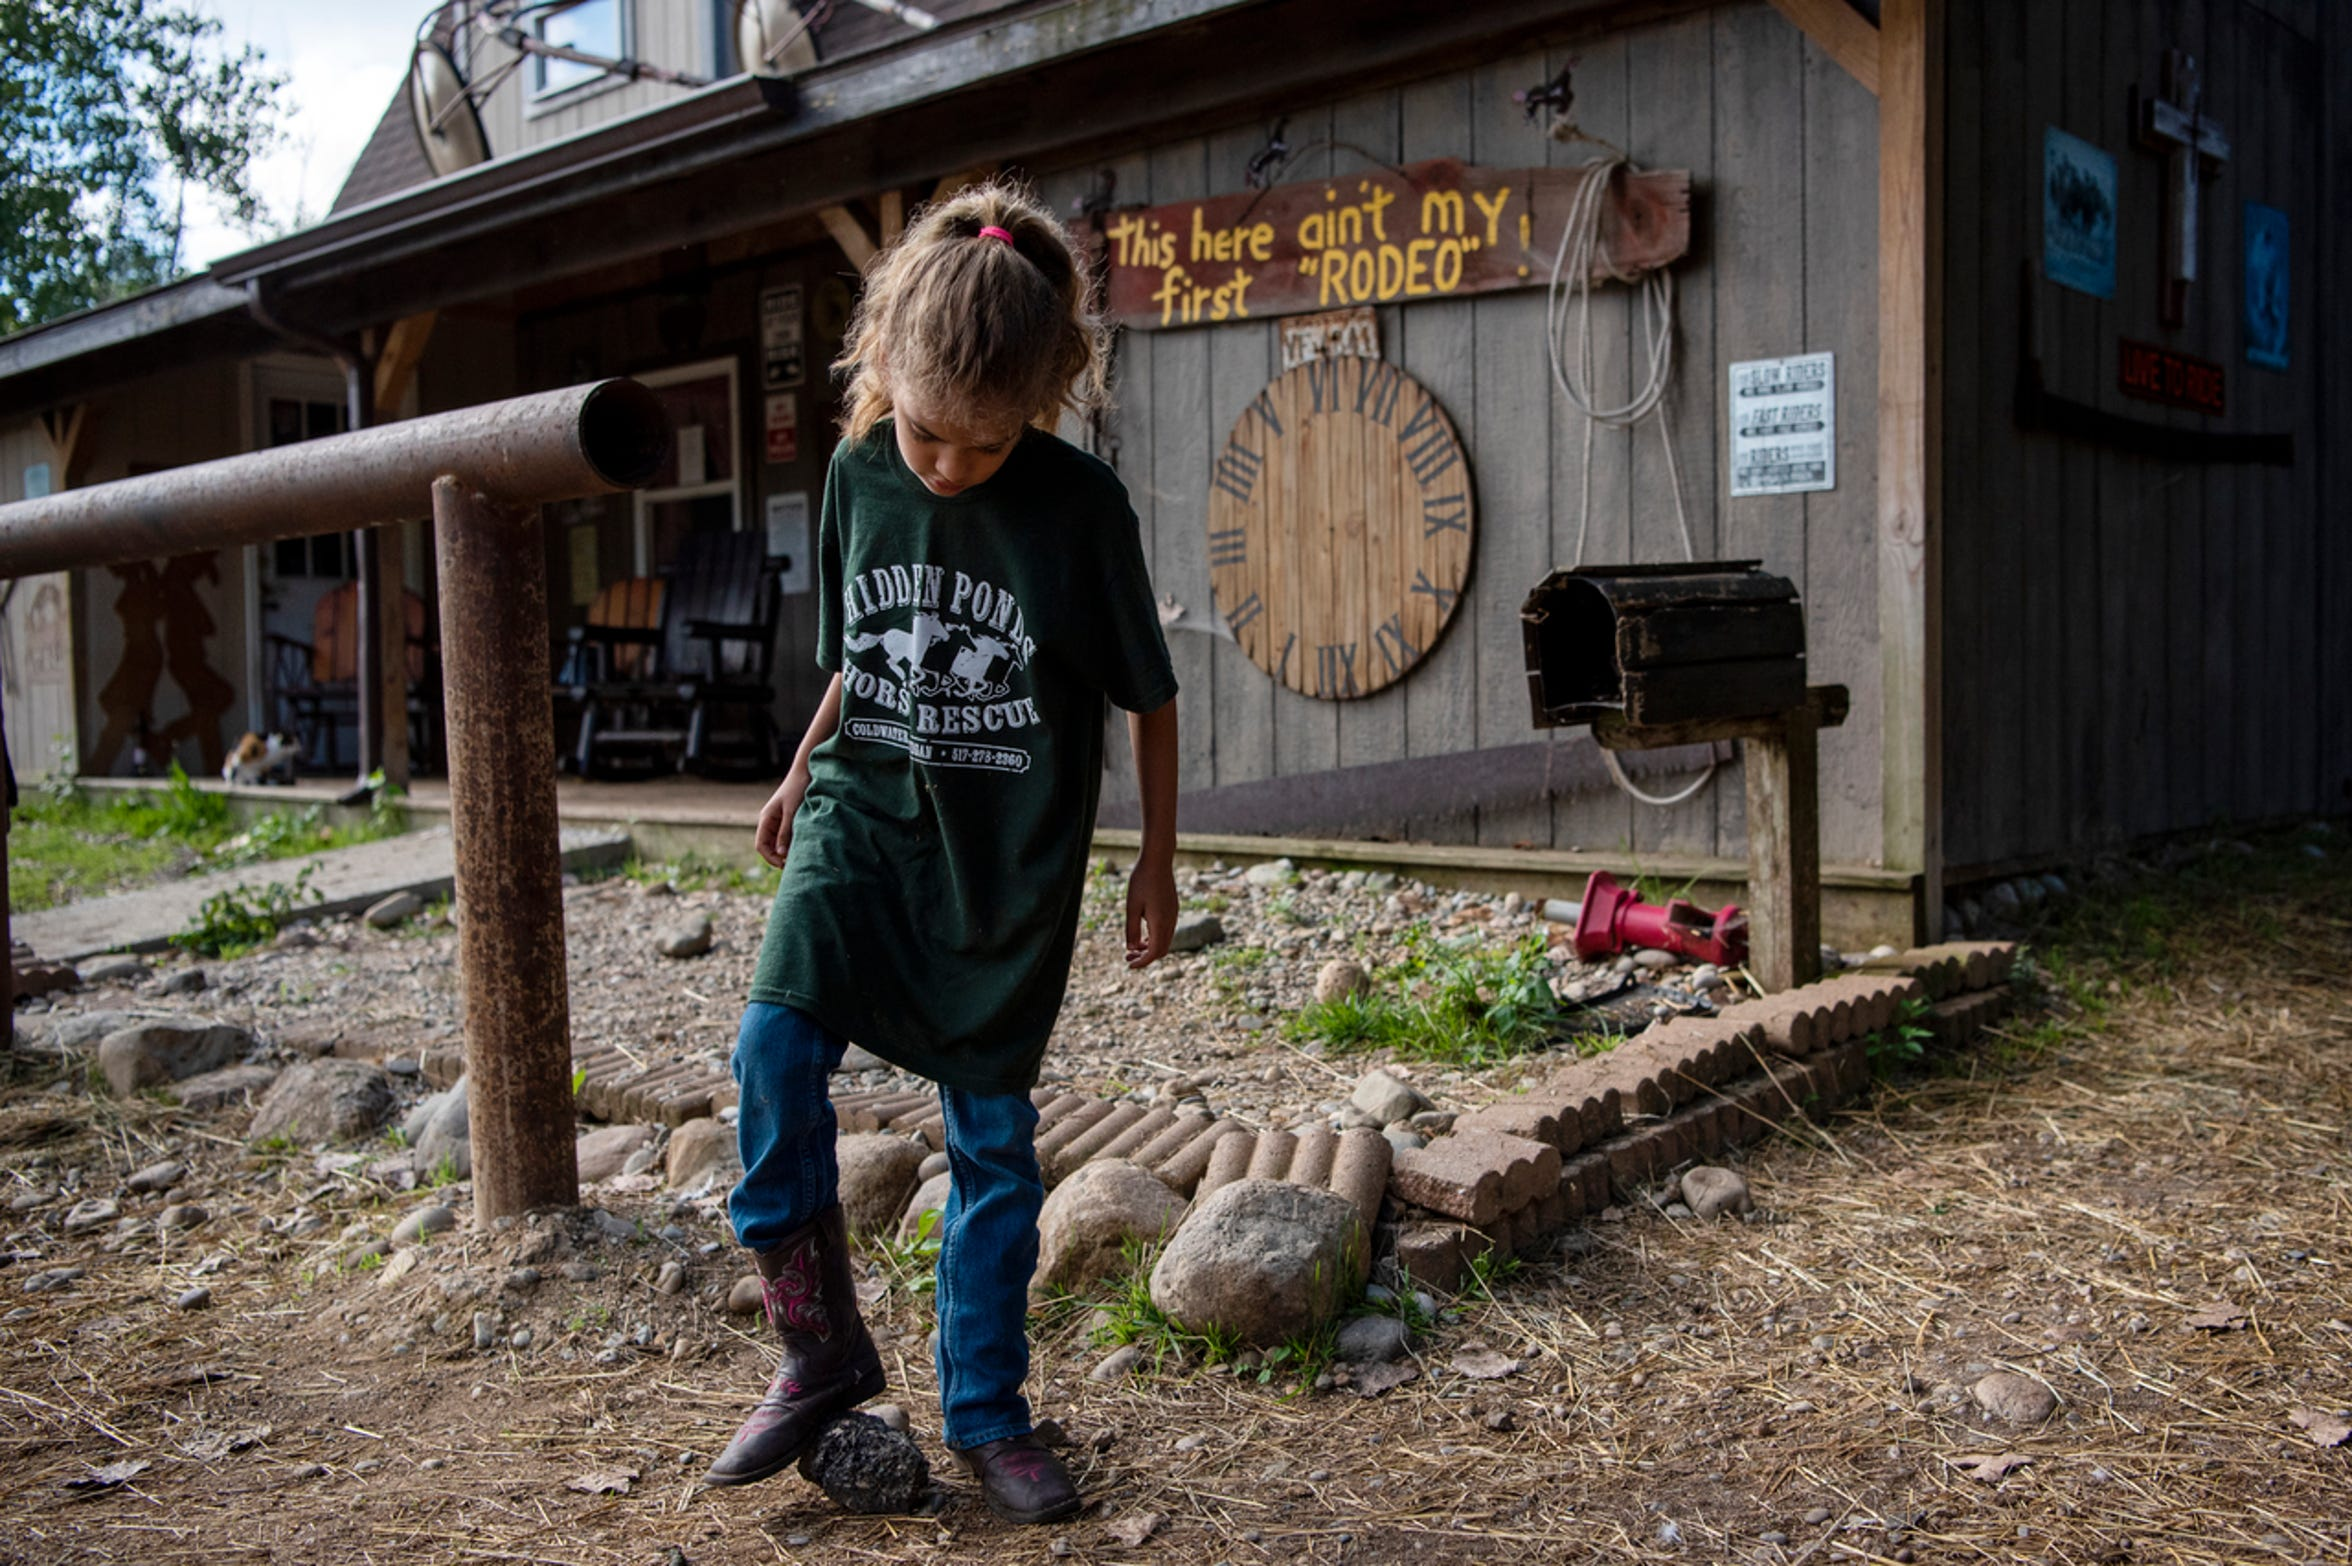 Victoria Gutierrez, 8, hangs out at Hidden Ponds Horse Rescue on Saturday, Sept. 7, 2019 in Coldwater, Mich. At Hidden Ponds, rescued horses are used for therapy, giving horses and humans a second chance.